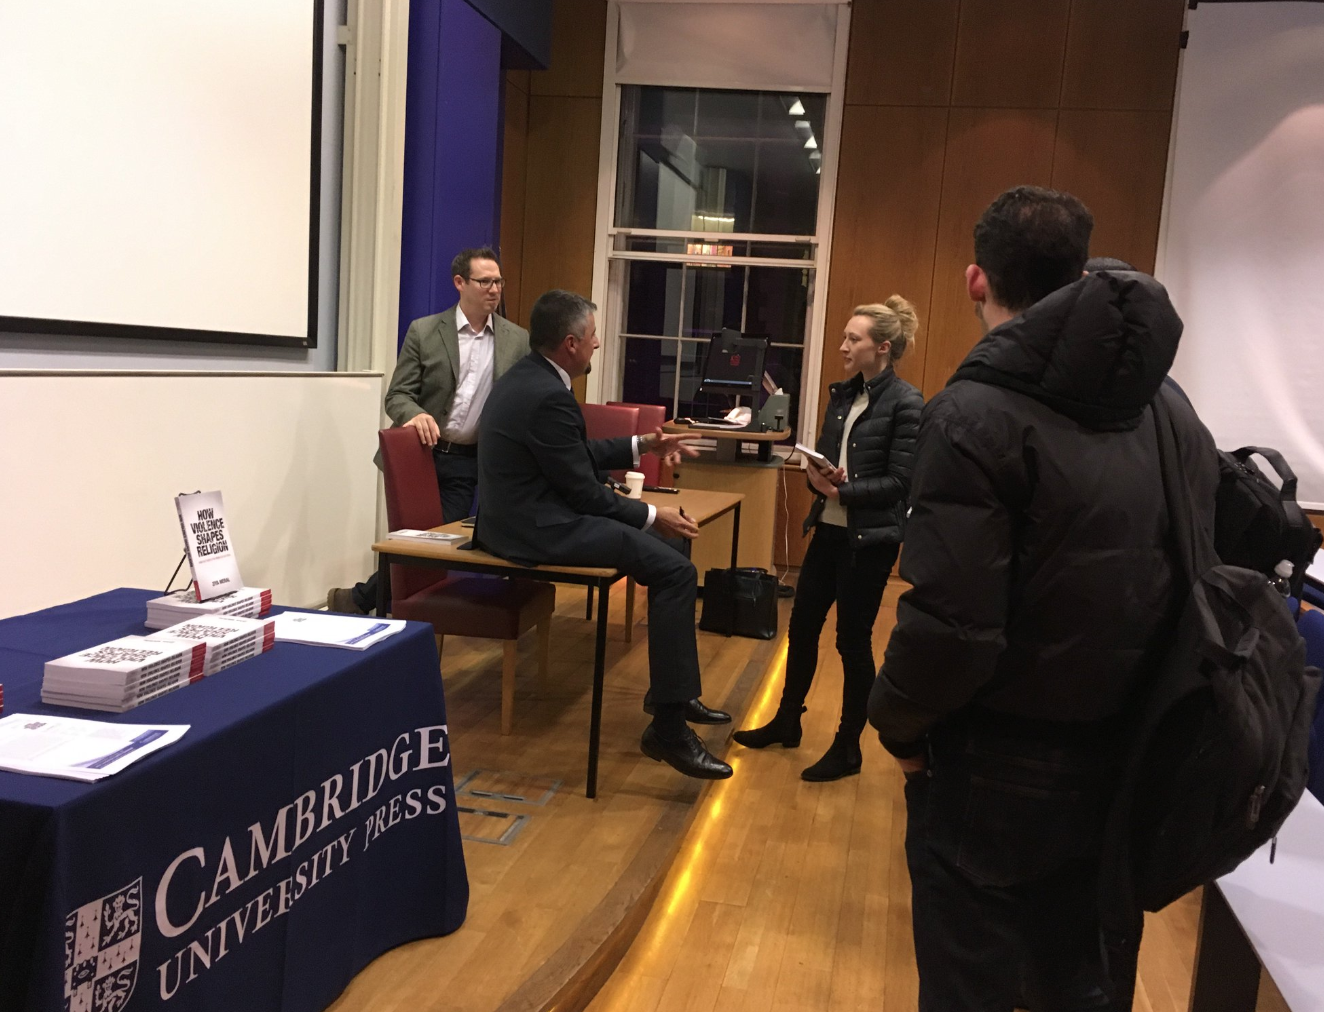 Book launch at King's College London